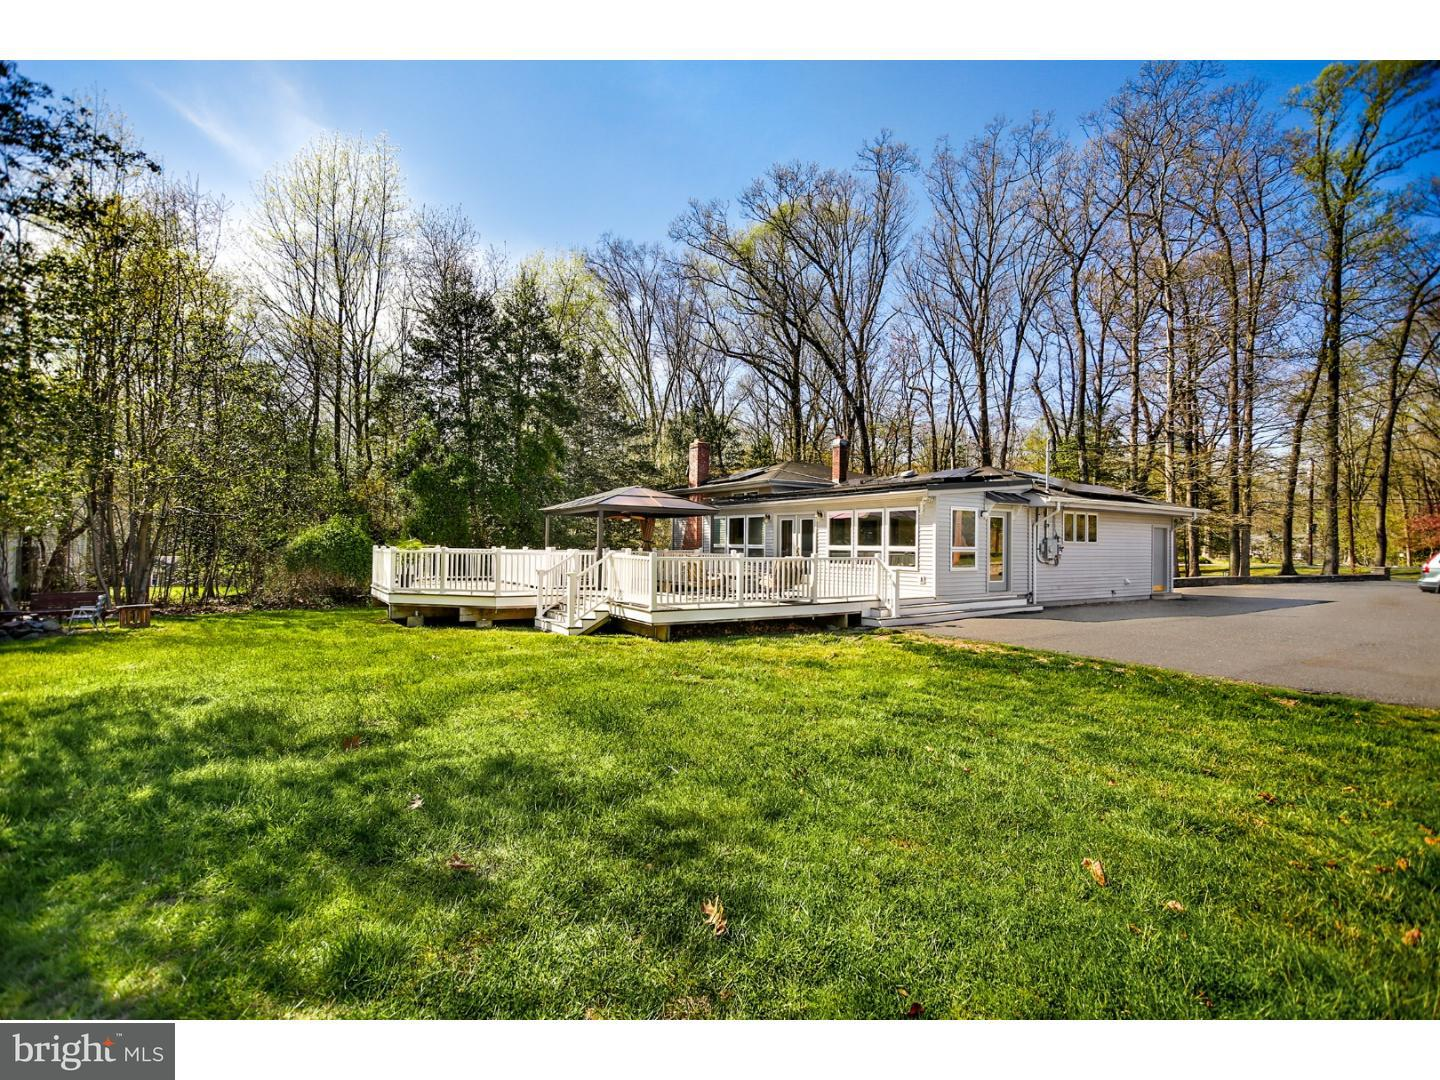 Single Family Home for Sale at 471 ALLOWAY ALDINE Road Alloway, New Jersey 08318 United States